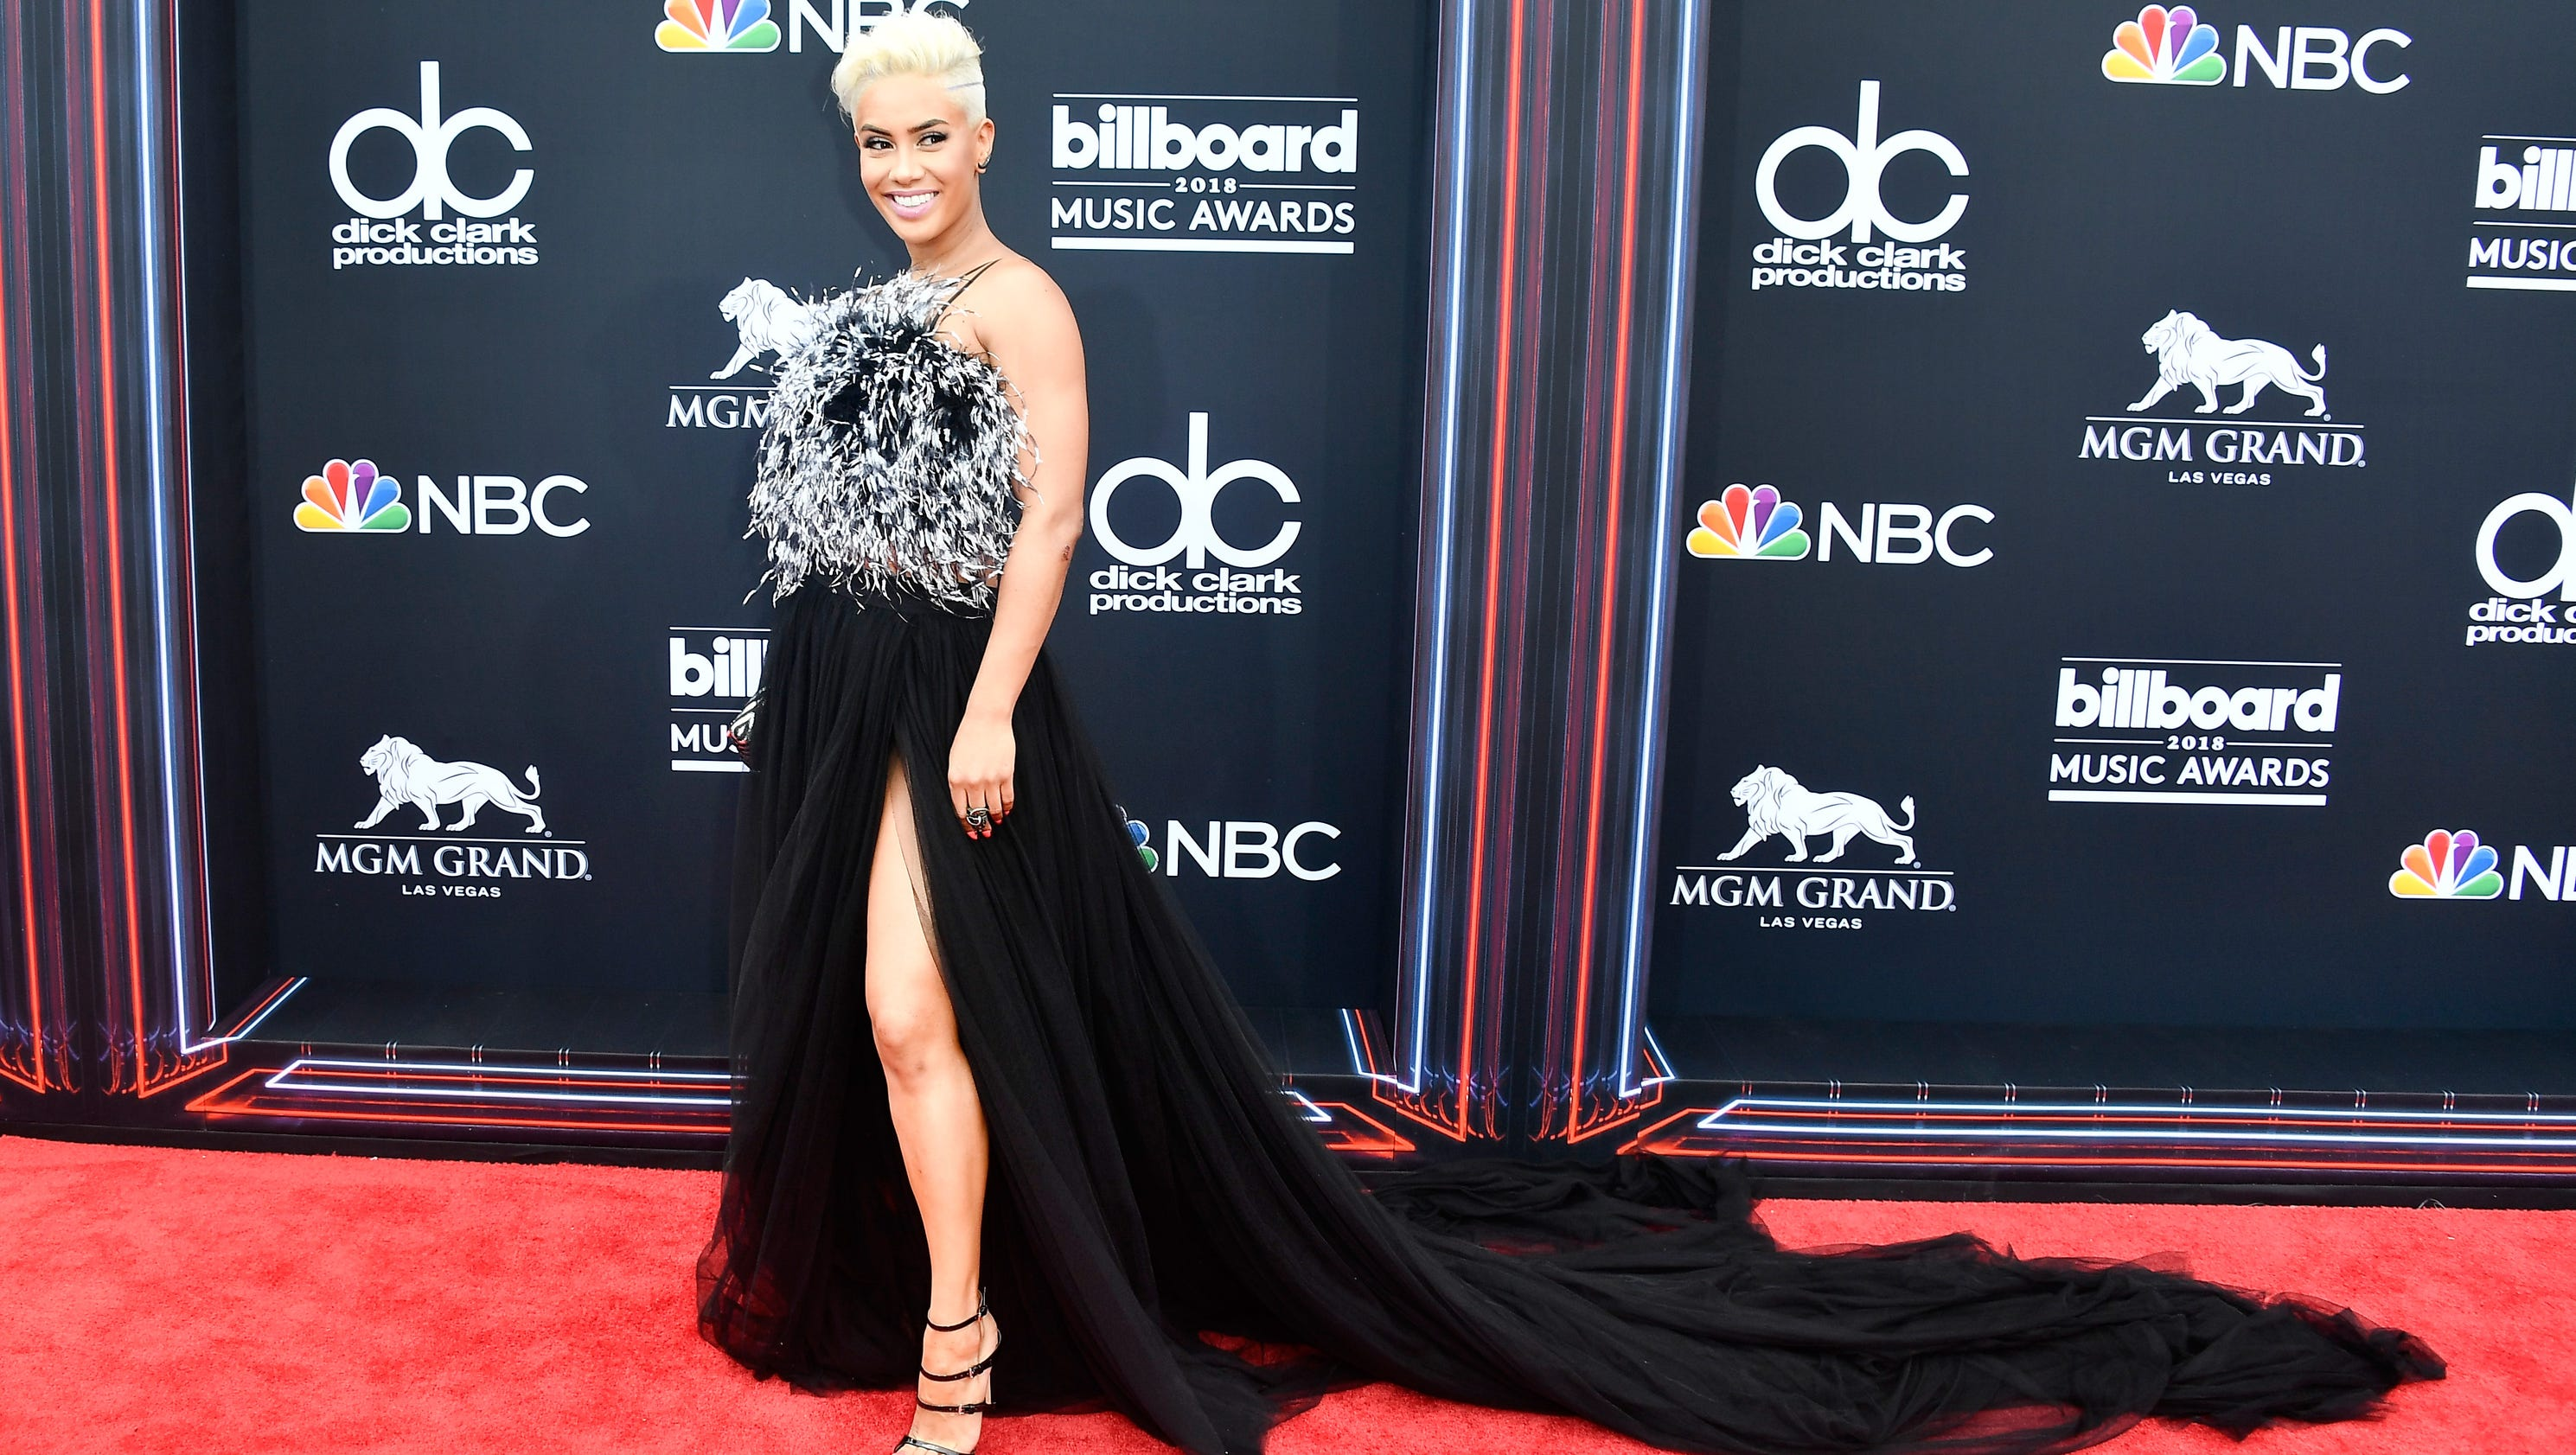 billboard music awards 2018 see all the red carpet looks. Black Bedroom Furniture Sets. Home Design Ideas